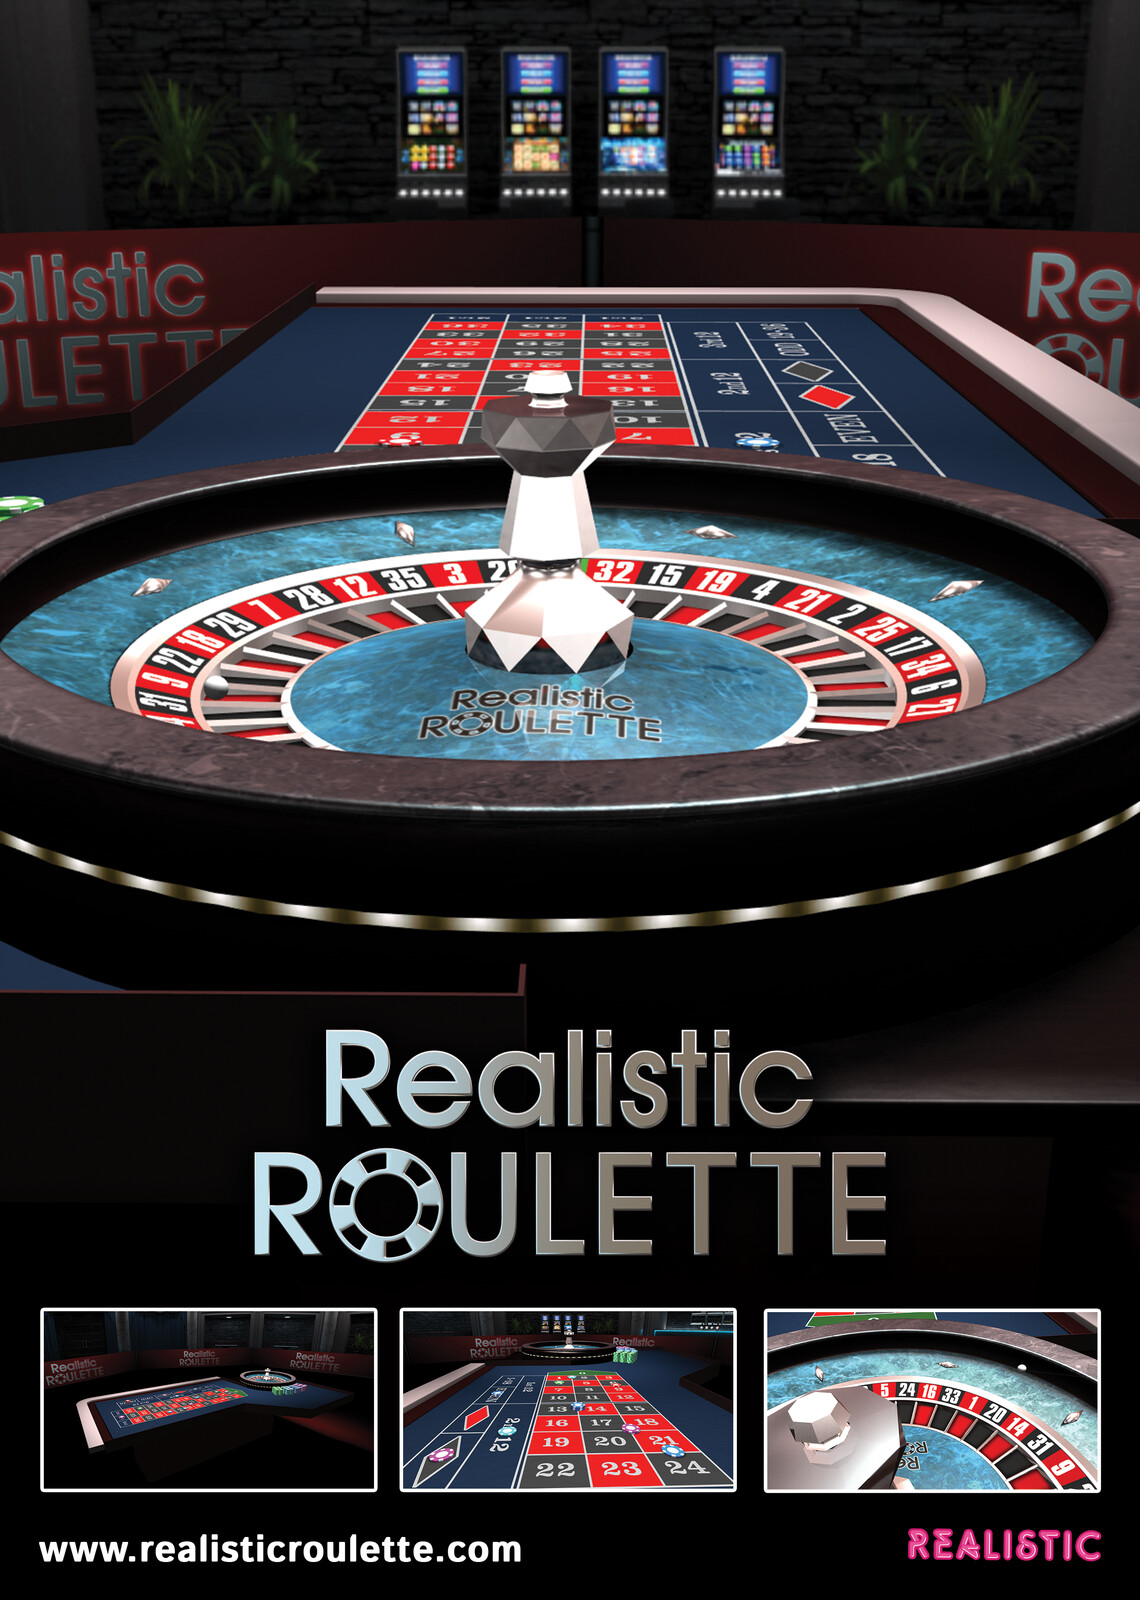 Realistic Roulette ICE Daily Magazine Advert